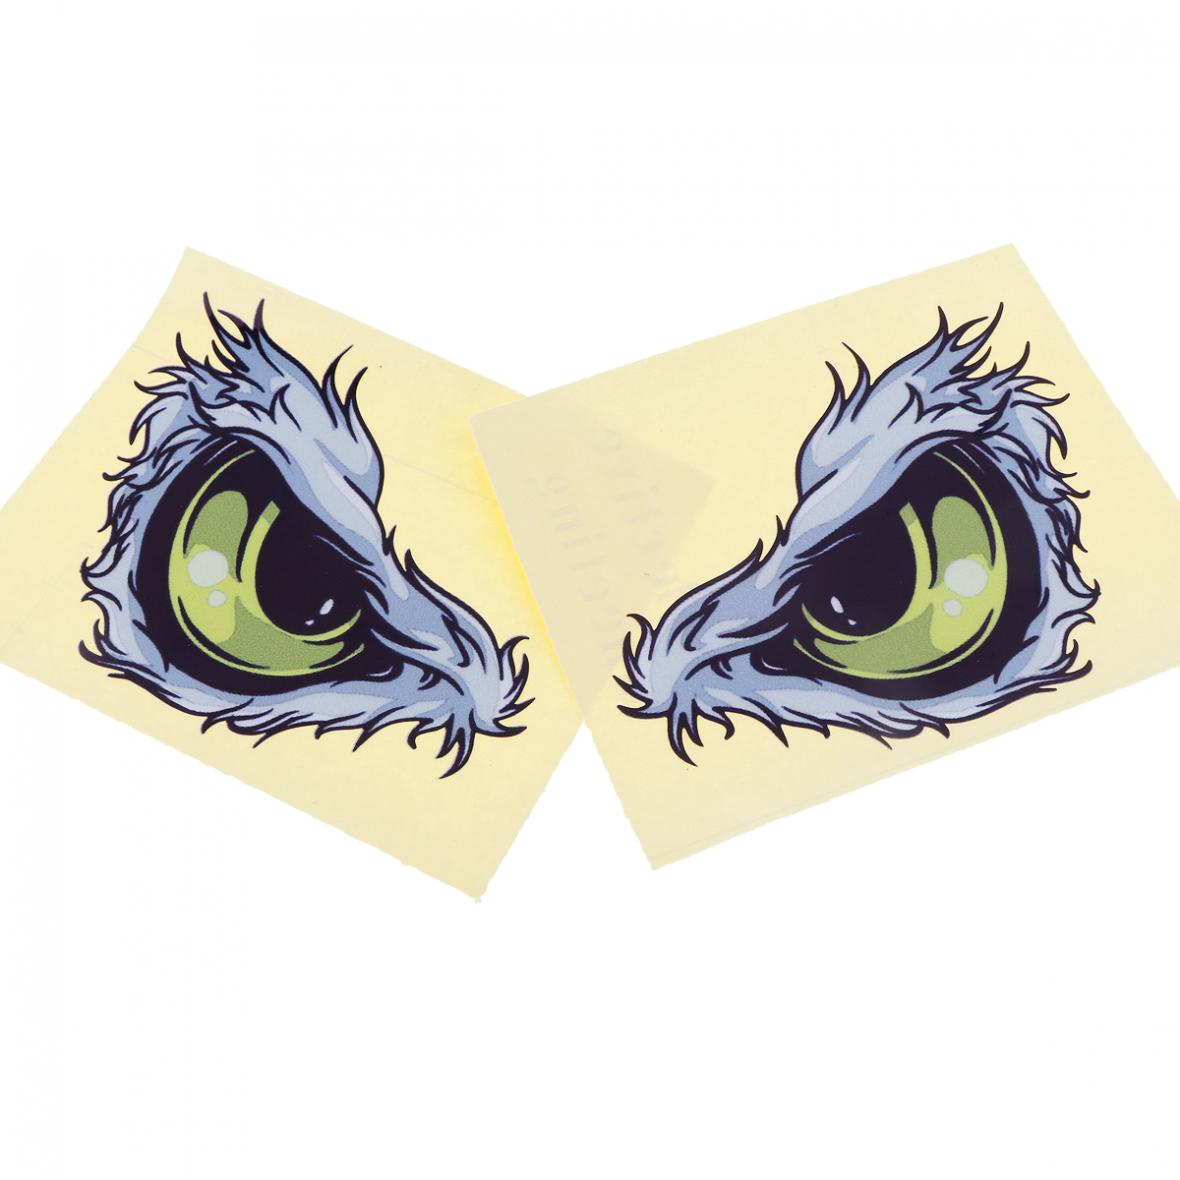 2pcs 3D 10 x 8CM Waterproof Reflective Material Eye Pattern Creative Funny Stereoscopic Car Sticker Accessories